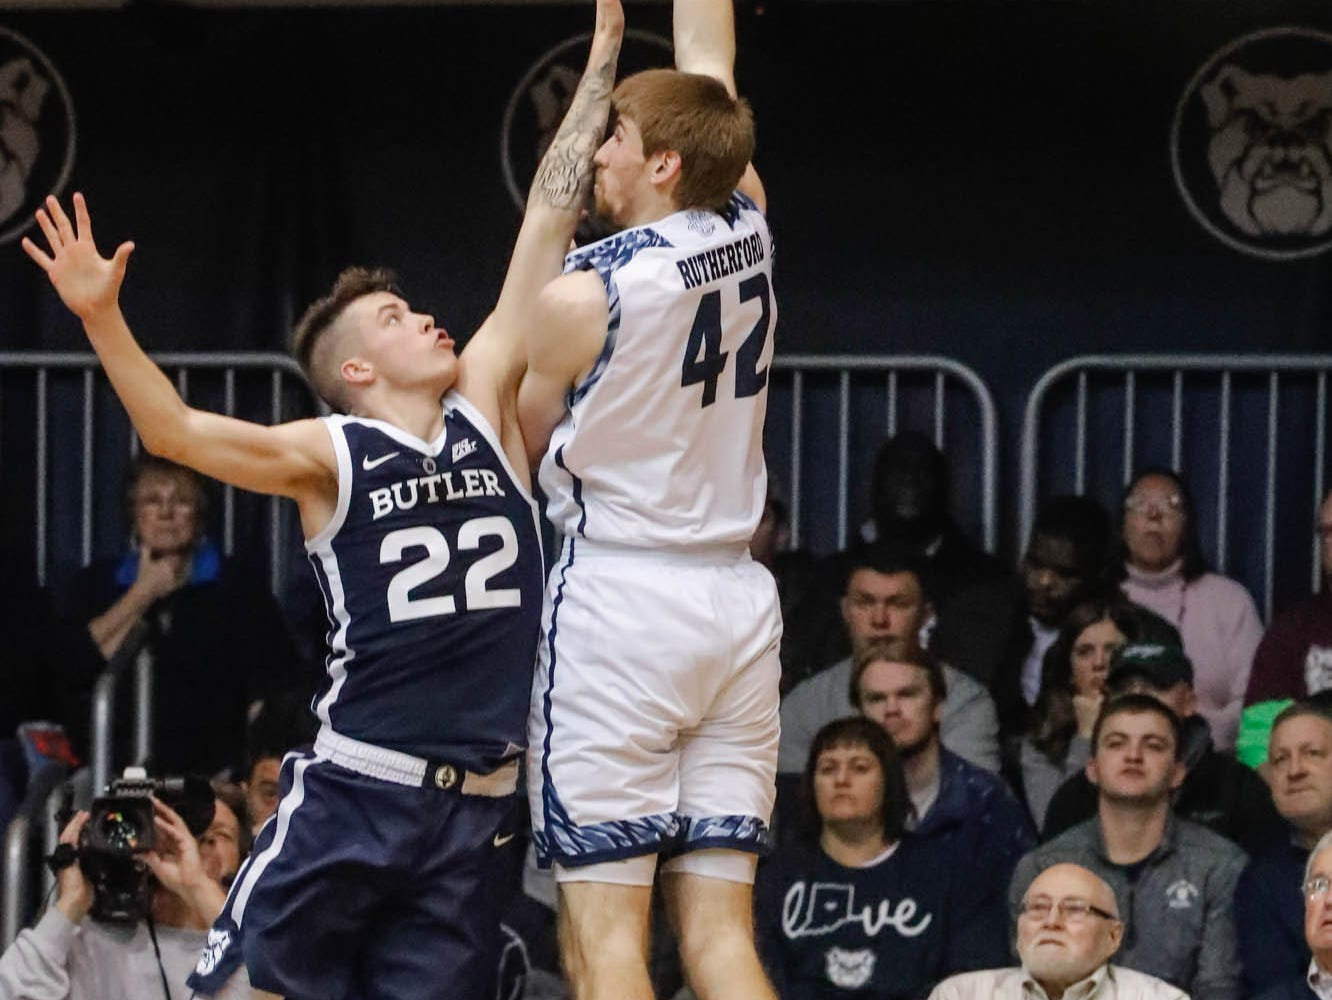 UC Irvine's forward Tommy Rutherford (42) shoots a hook shot over Butler University's forward Sean McDermott (22), during a game between Butler University and UC Irvine, at Hinkle Fieldhouse on Friday, Dec. 21, 2018.